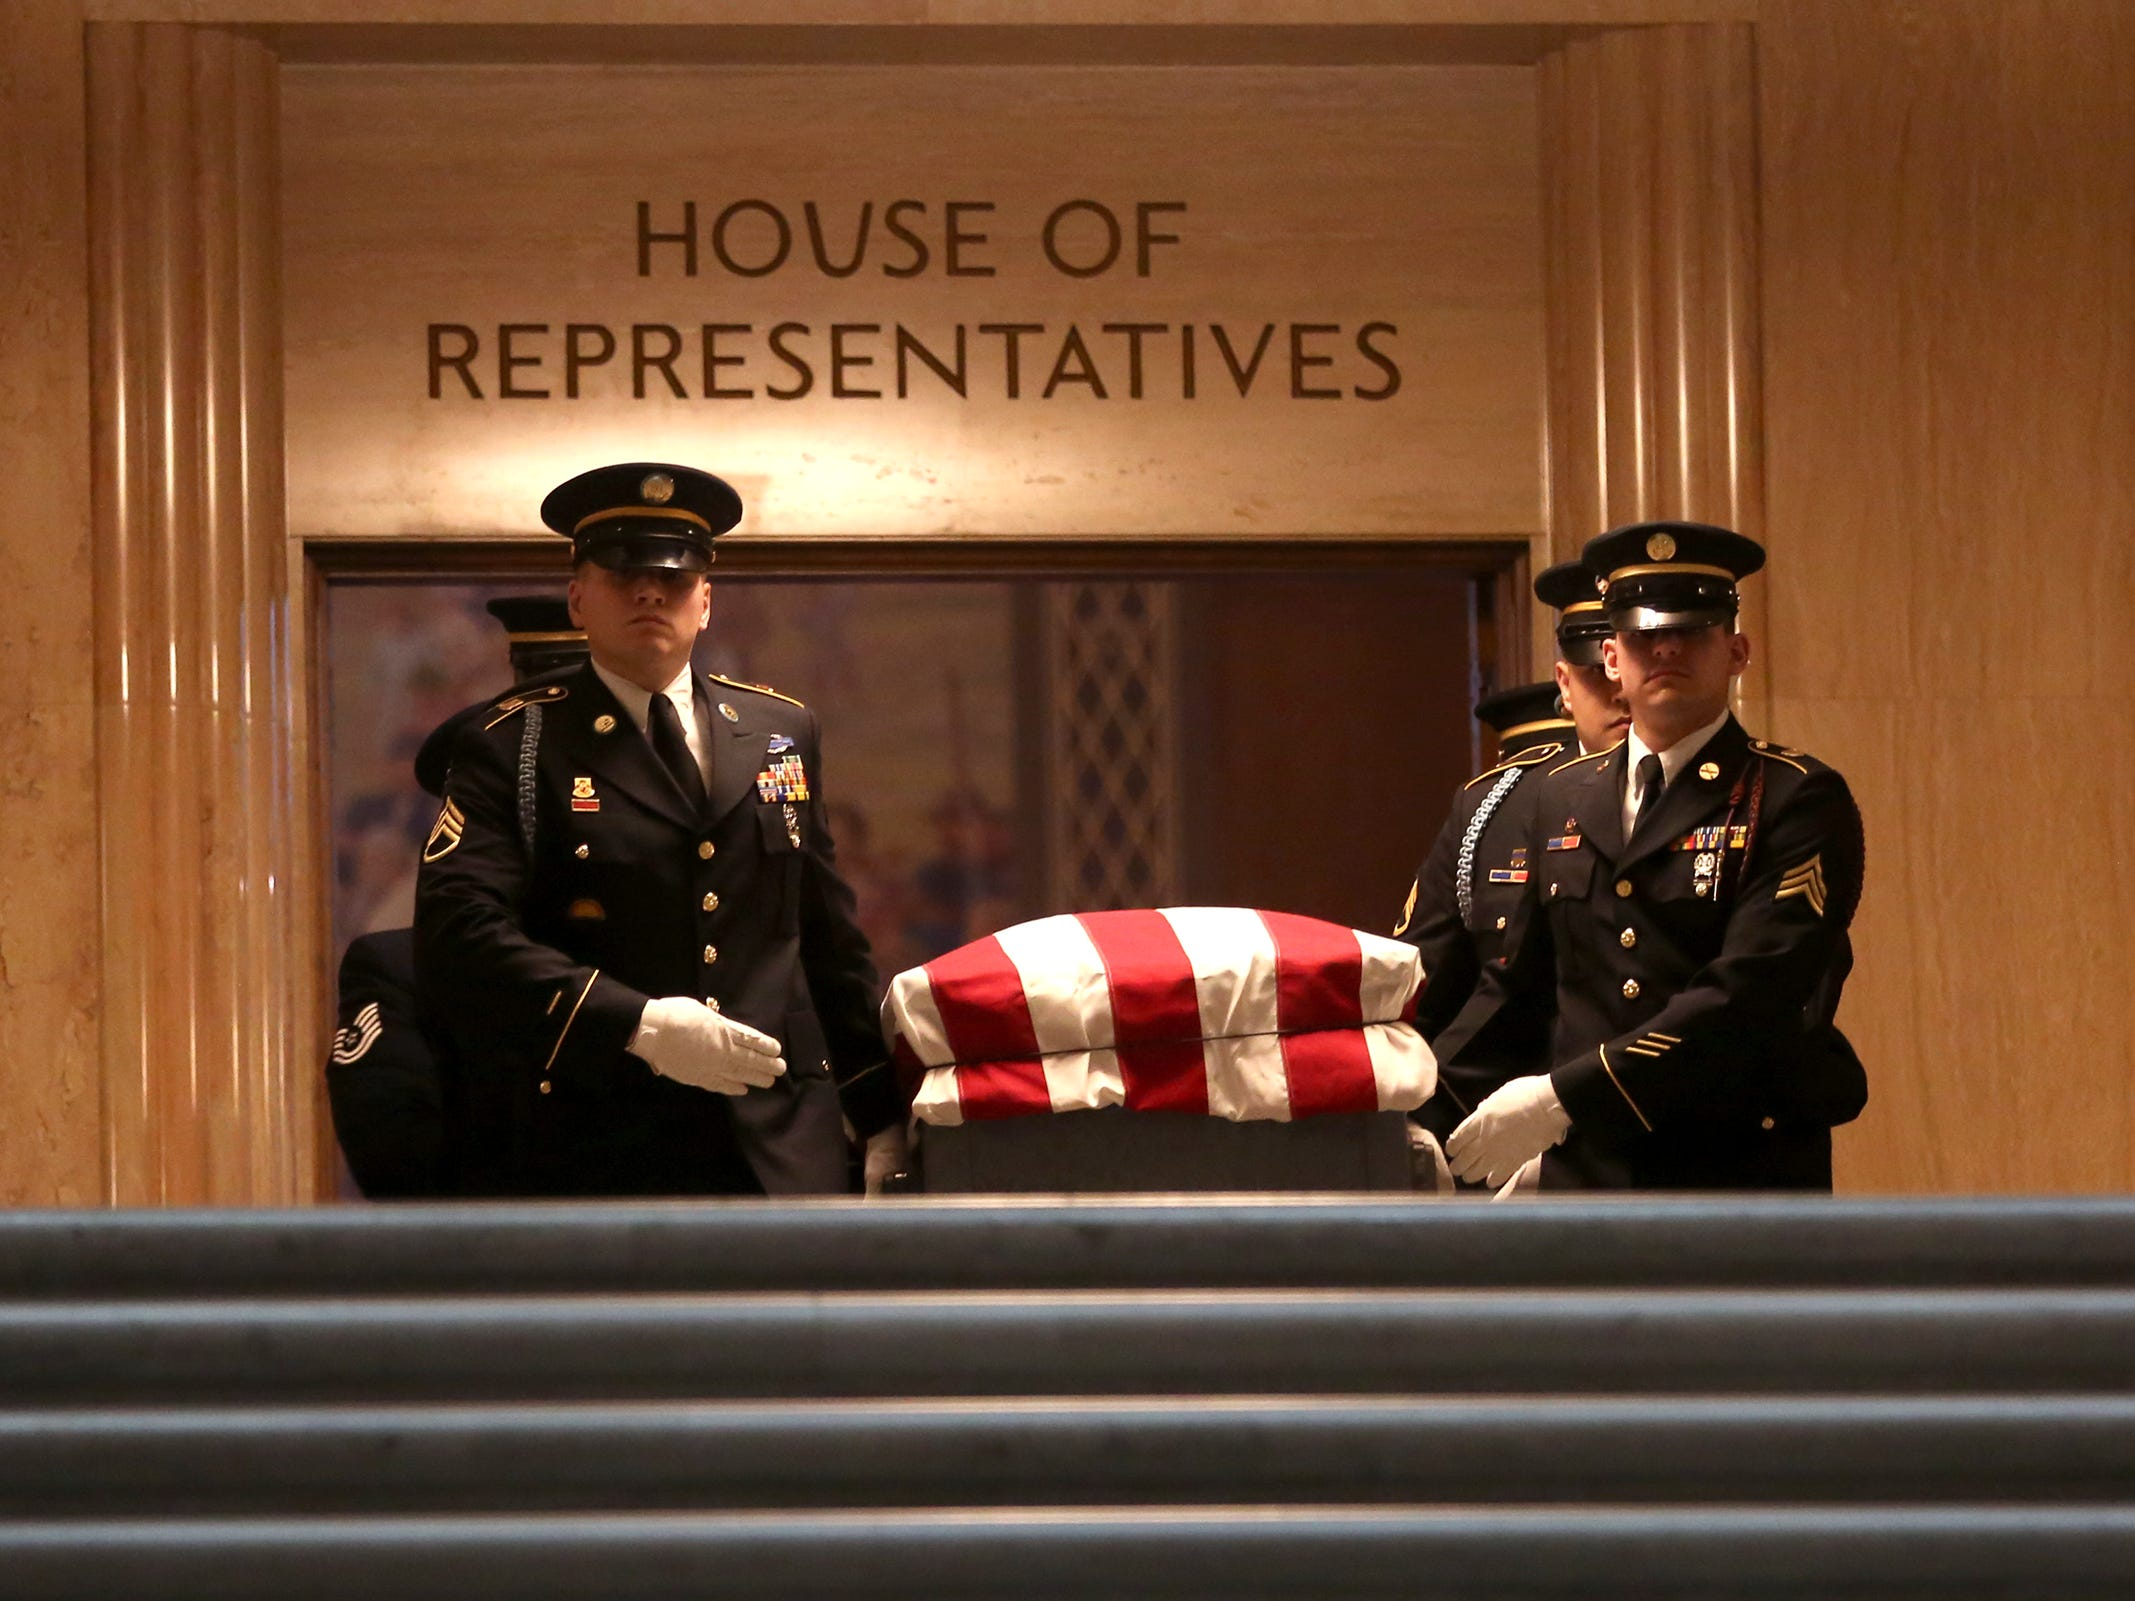 The casket is escorted out of the House of Representatives after the state funeral for Secretary of State Dennis Richardson at the Oregon State Capitol in Salem on Wednesday, March 6, 2019.